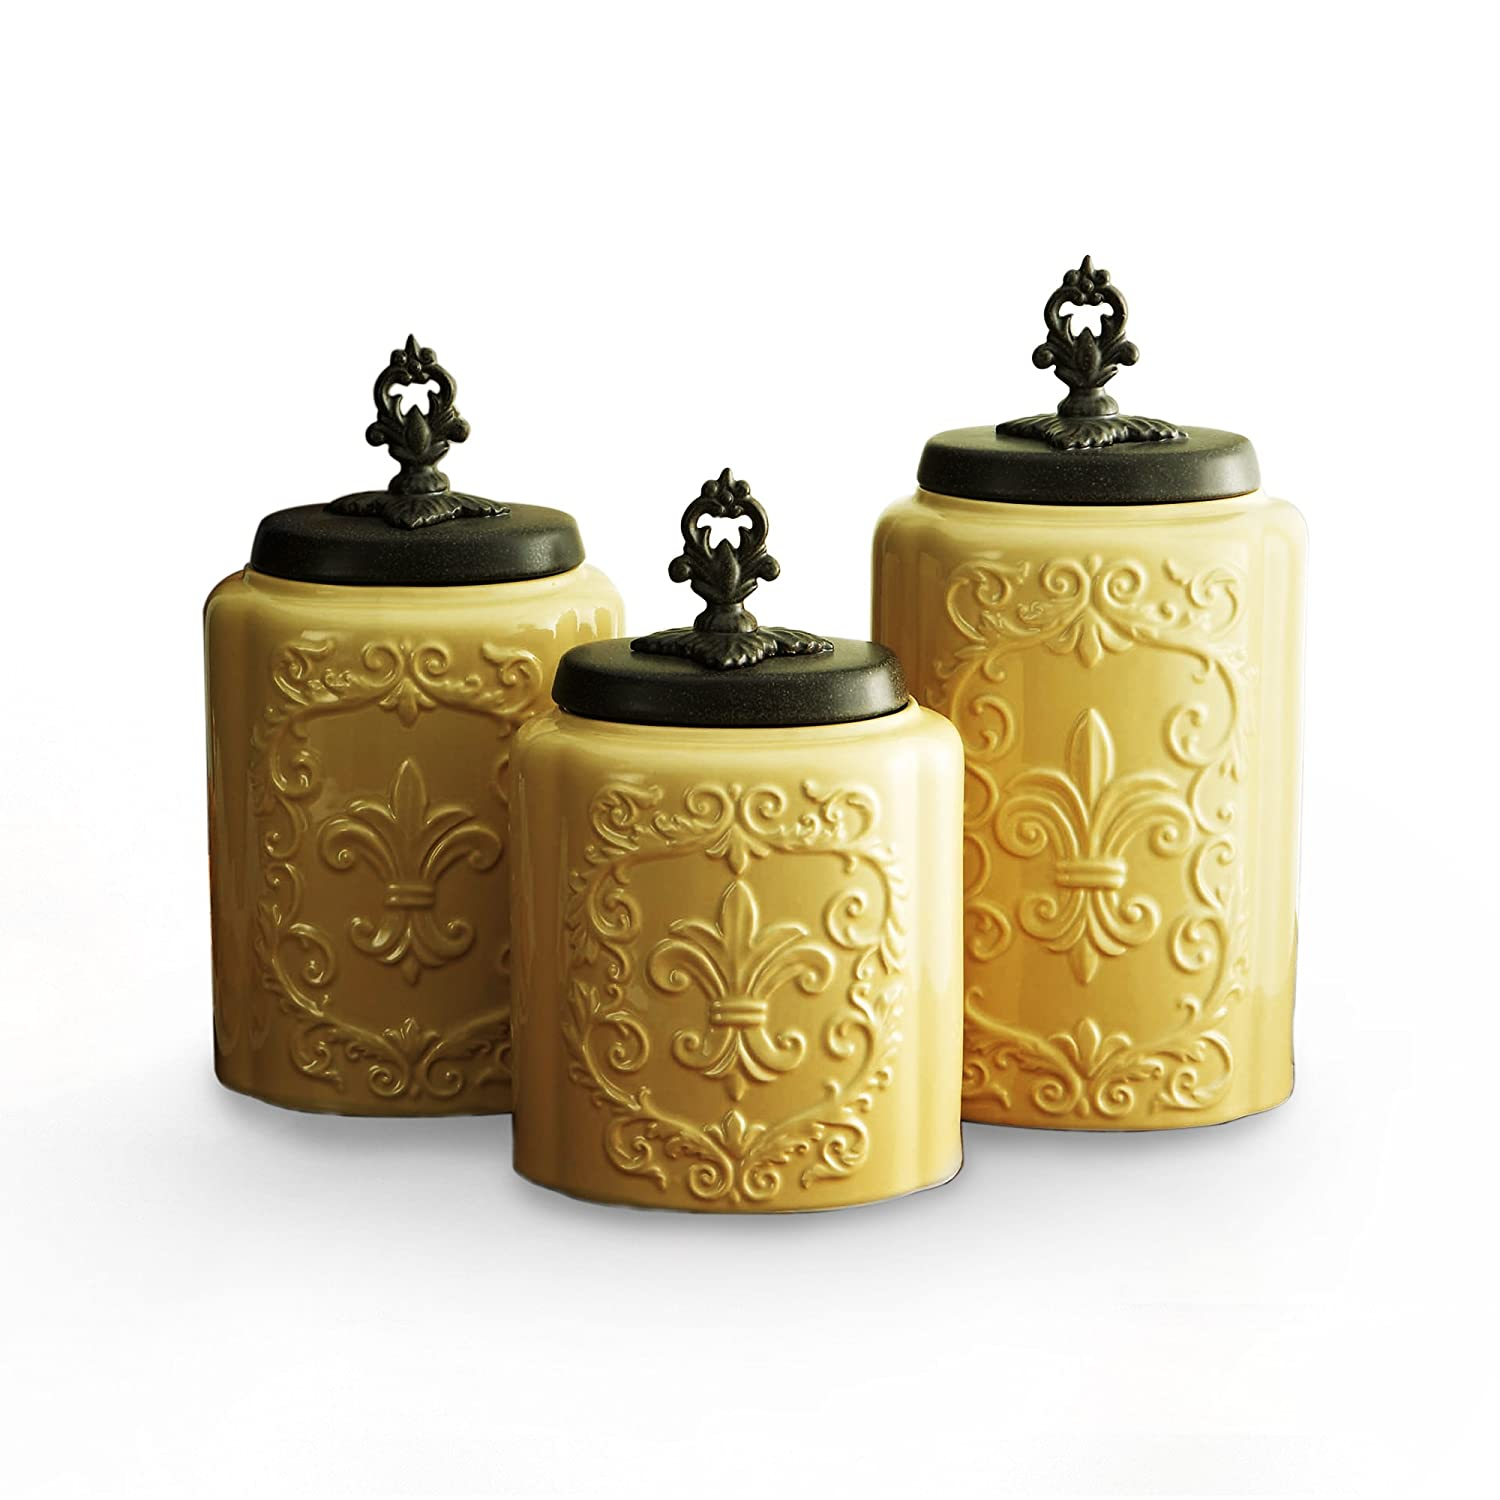 amazon com american atelier canisters cream antique set of 3 amazon com american atelier canisters cream antique set of 3 home kitchen